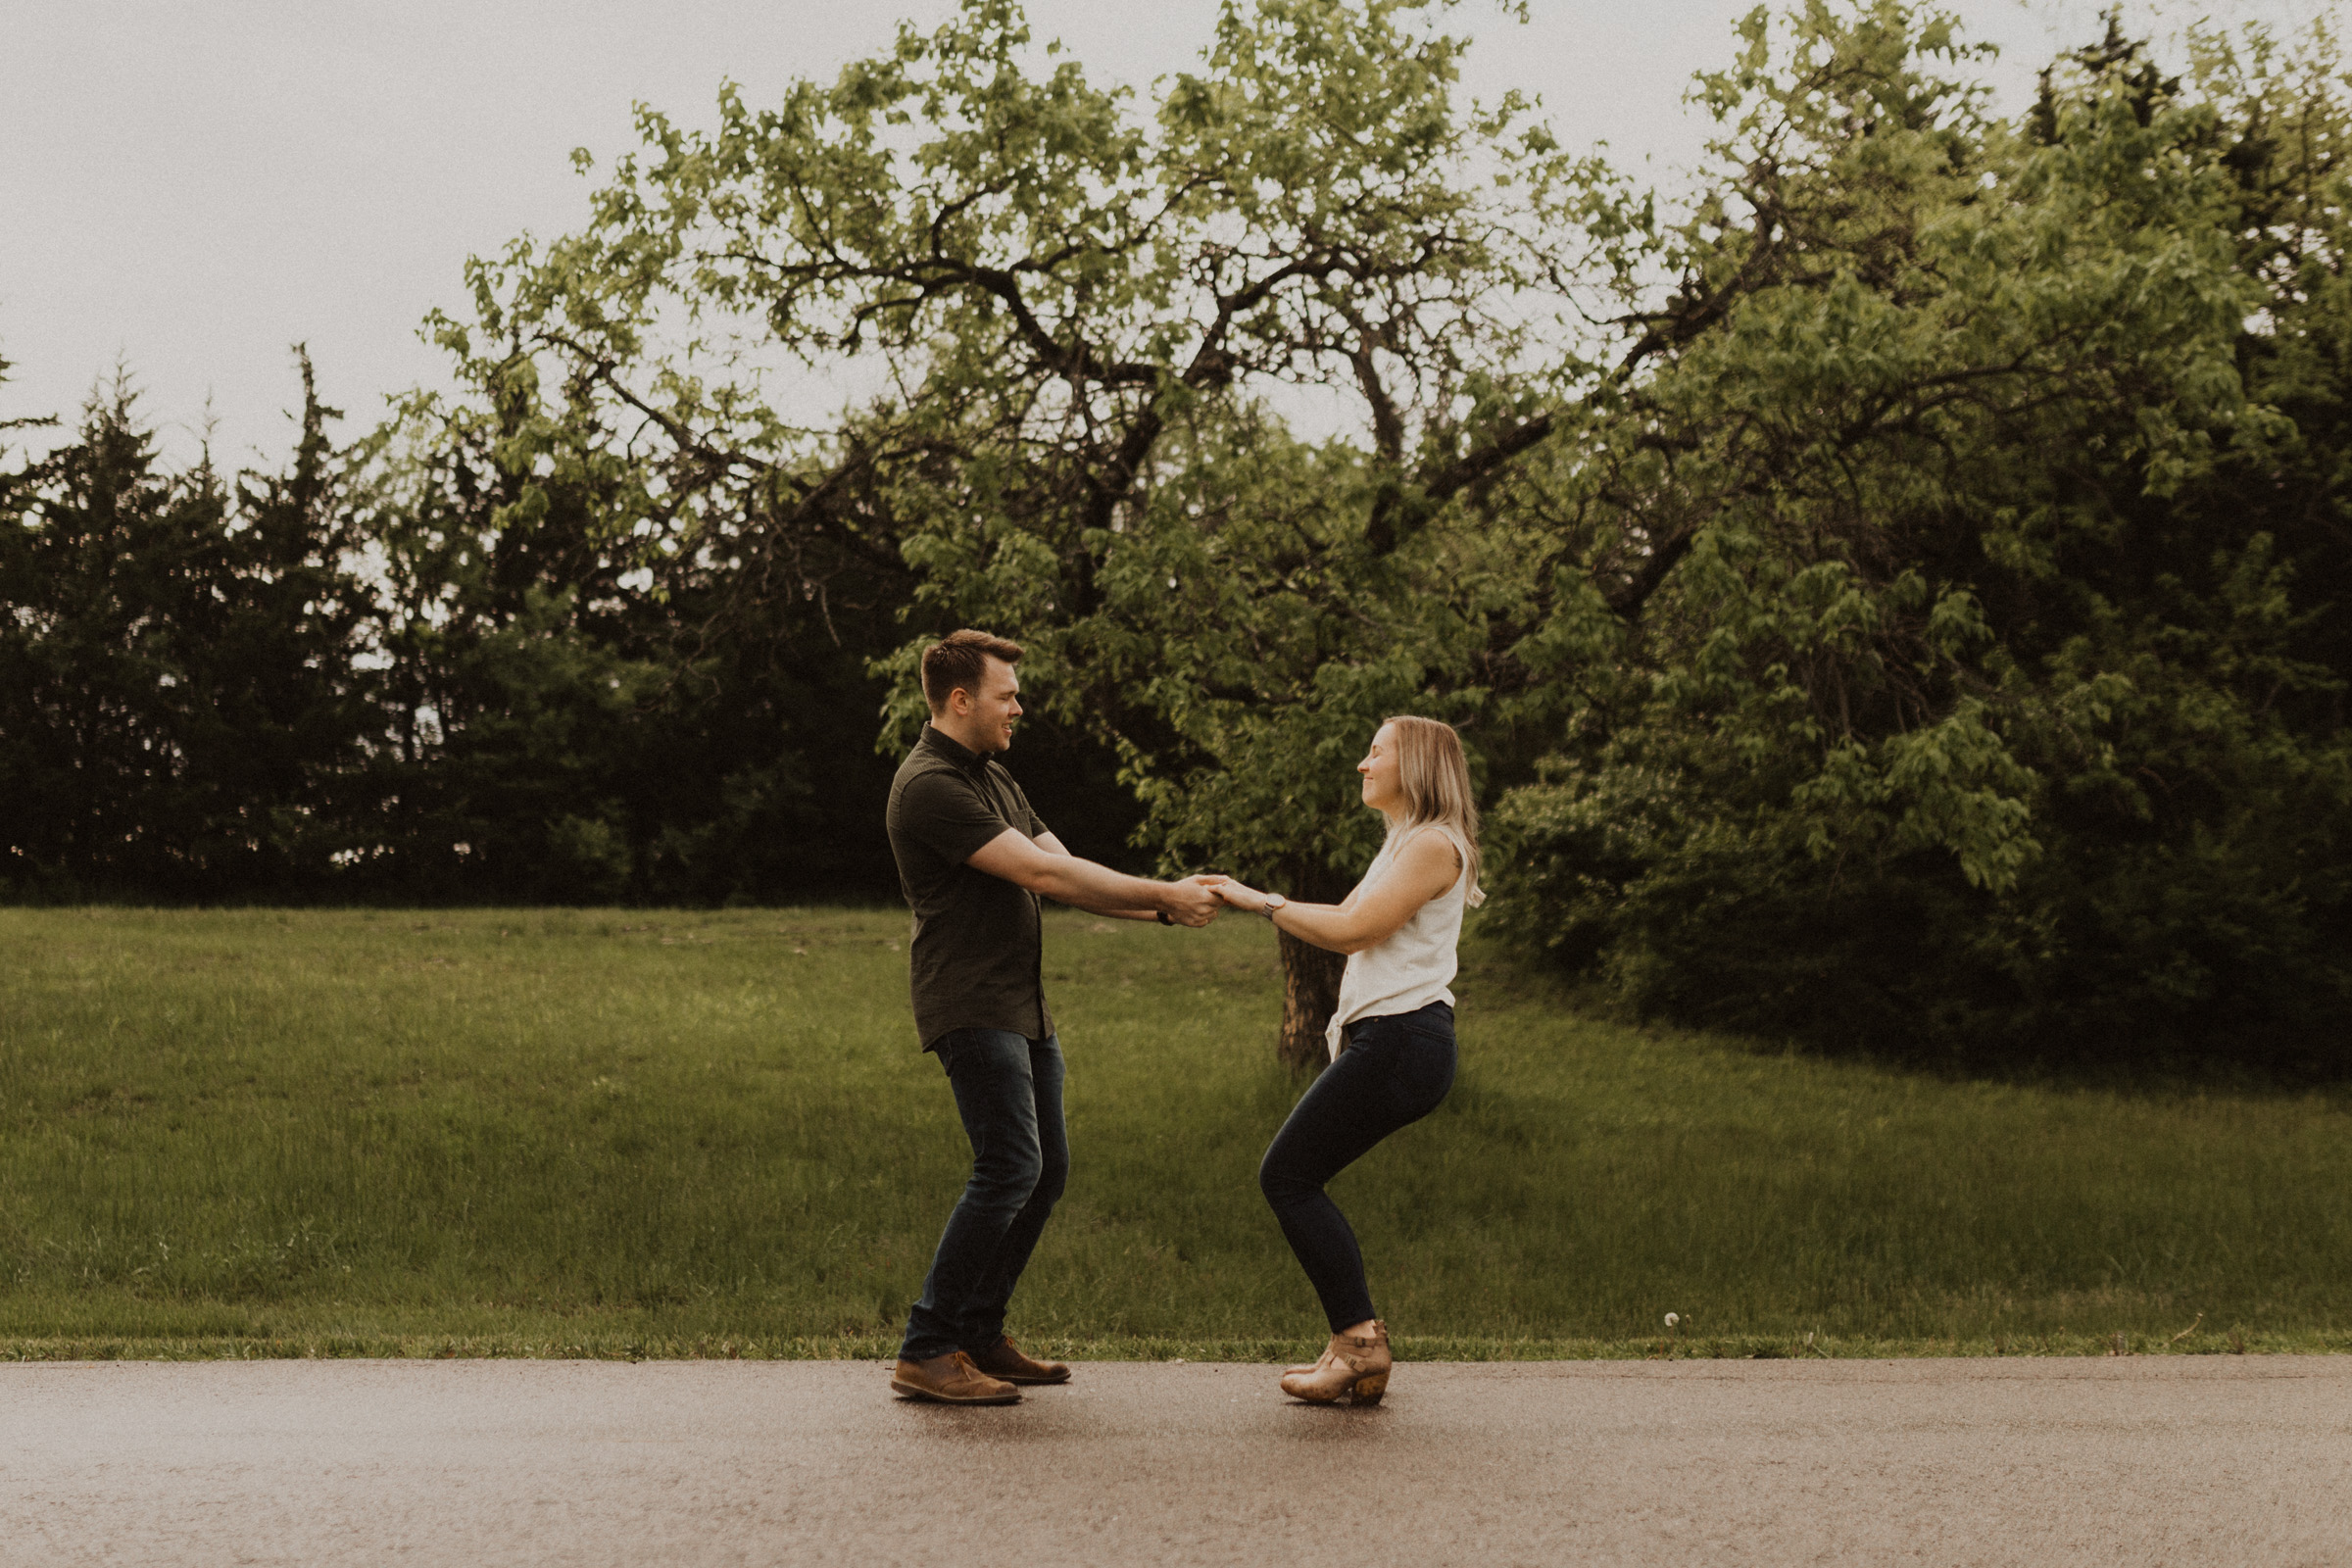 alyssa barletter photography shawnee mission park engagement session photographer sunset-6.jpg